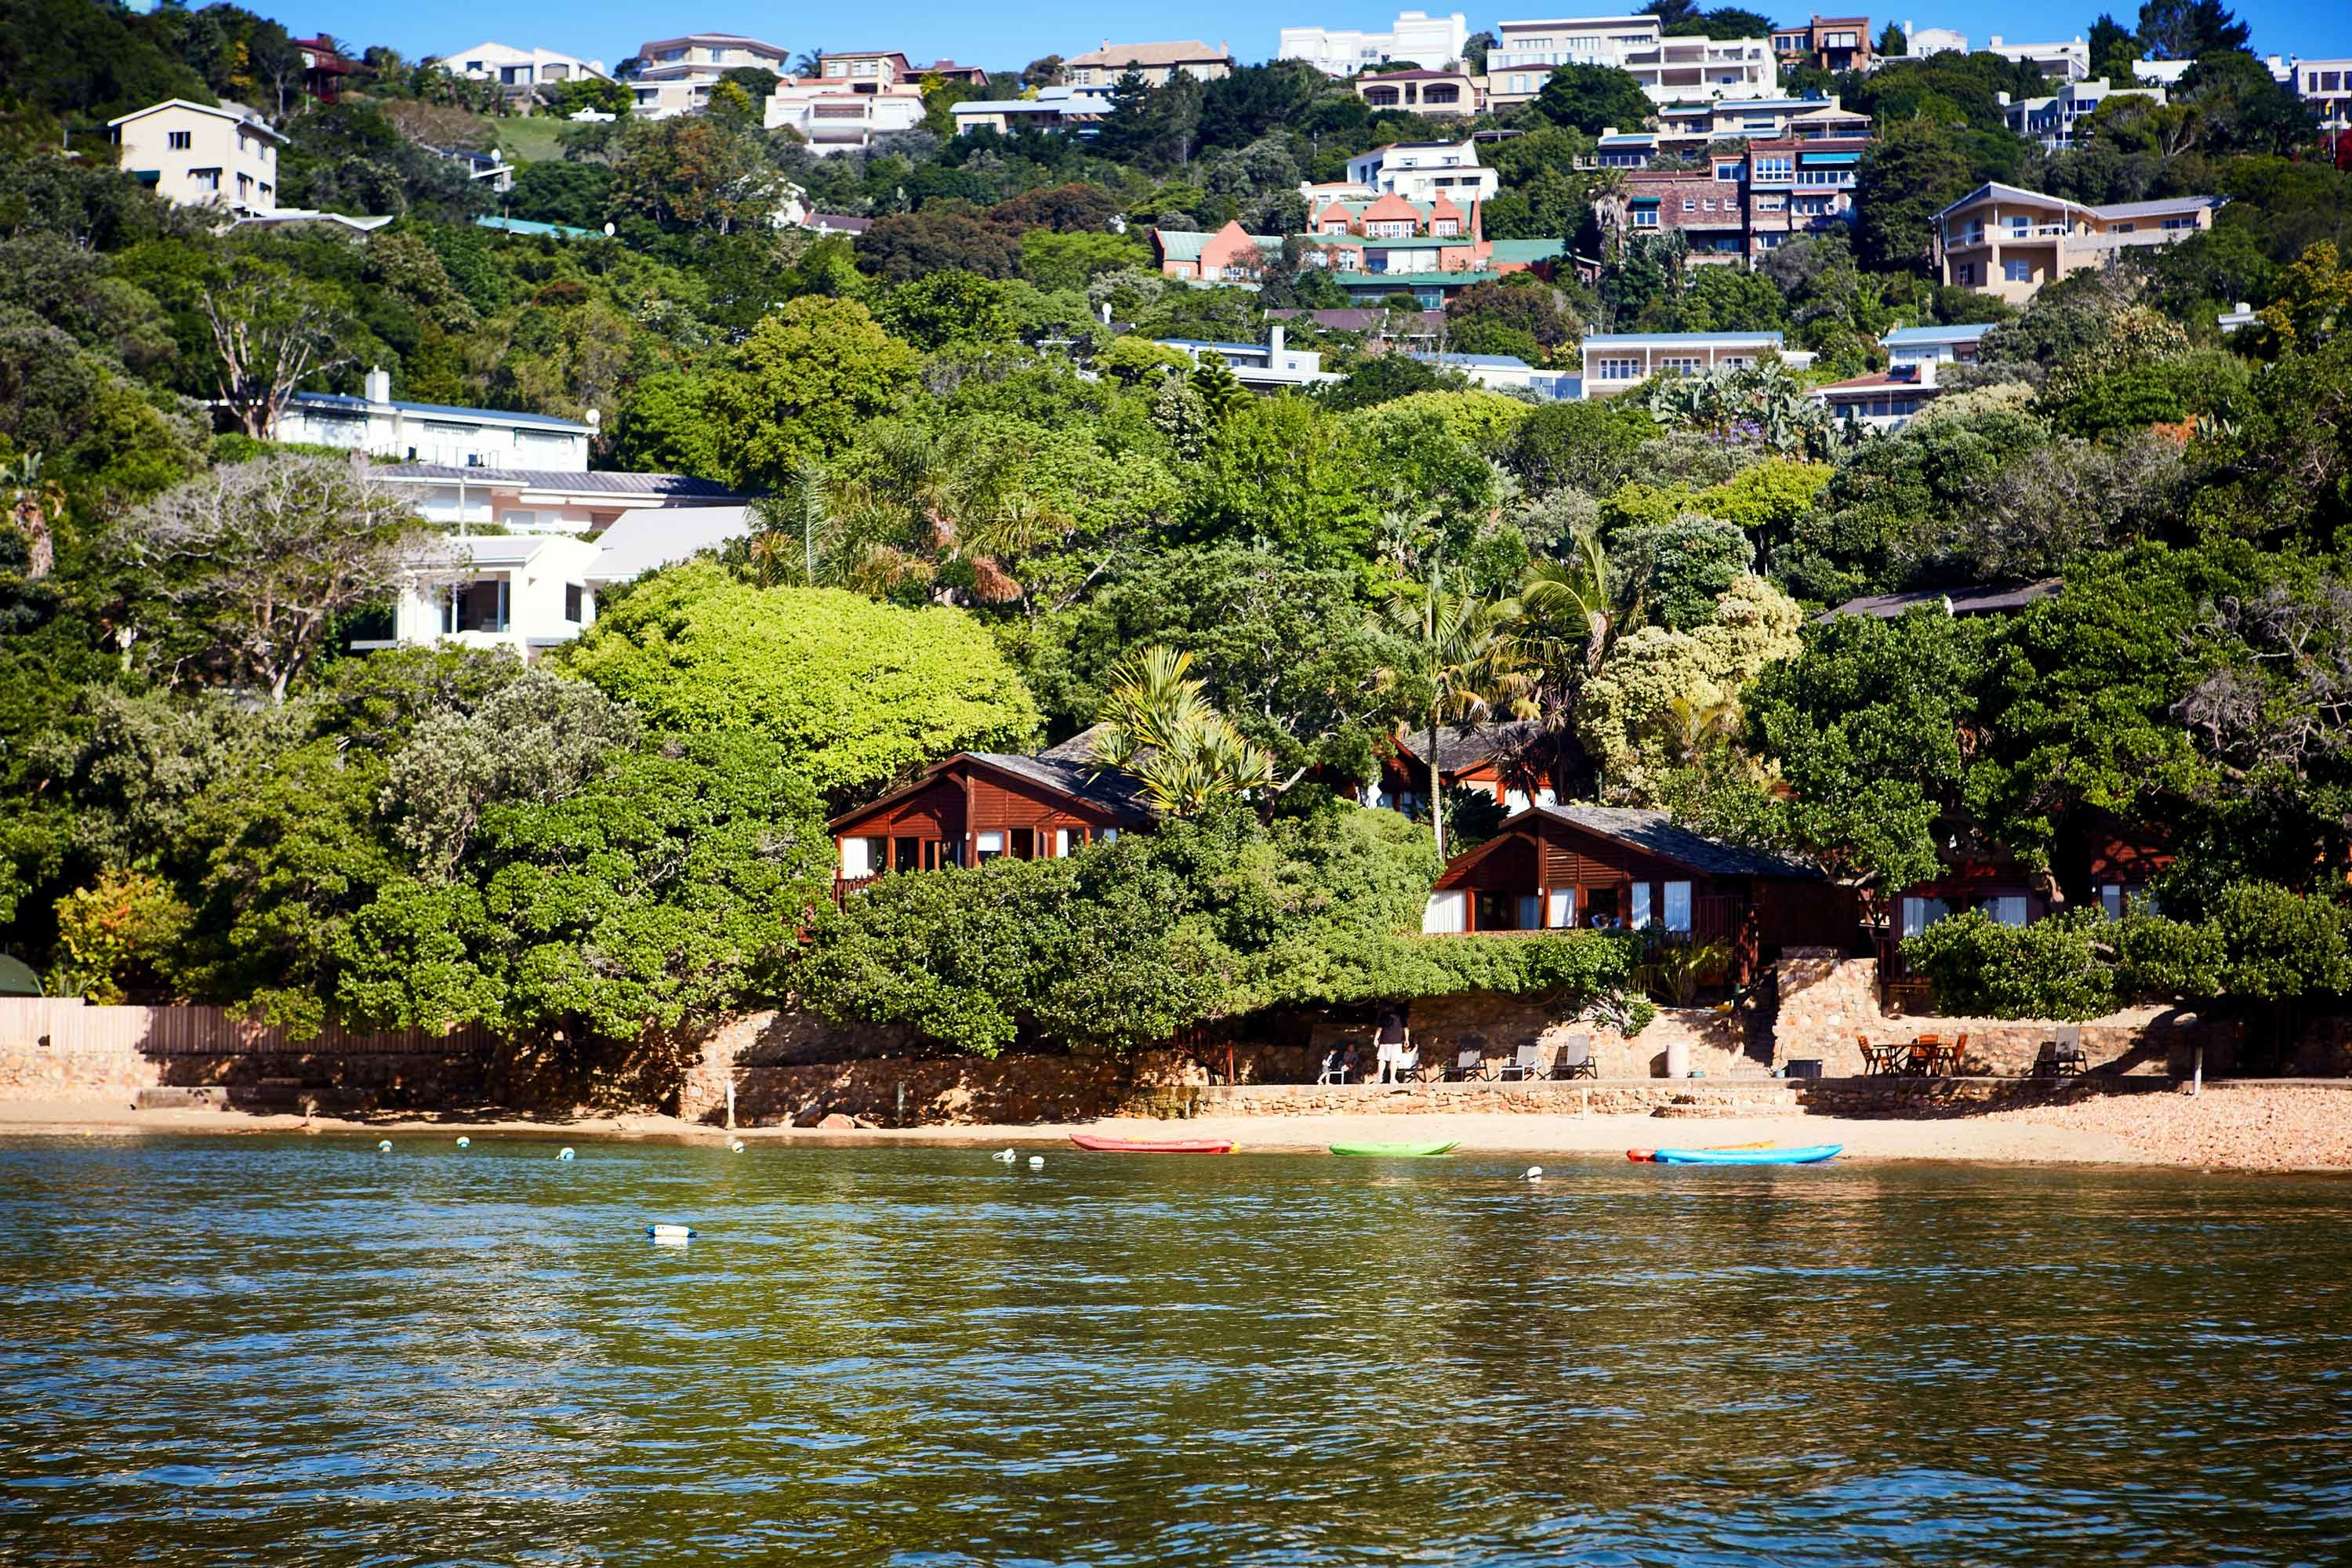 A view of Under Milkwood Chalets from the lagoon